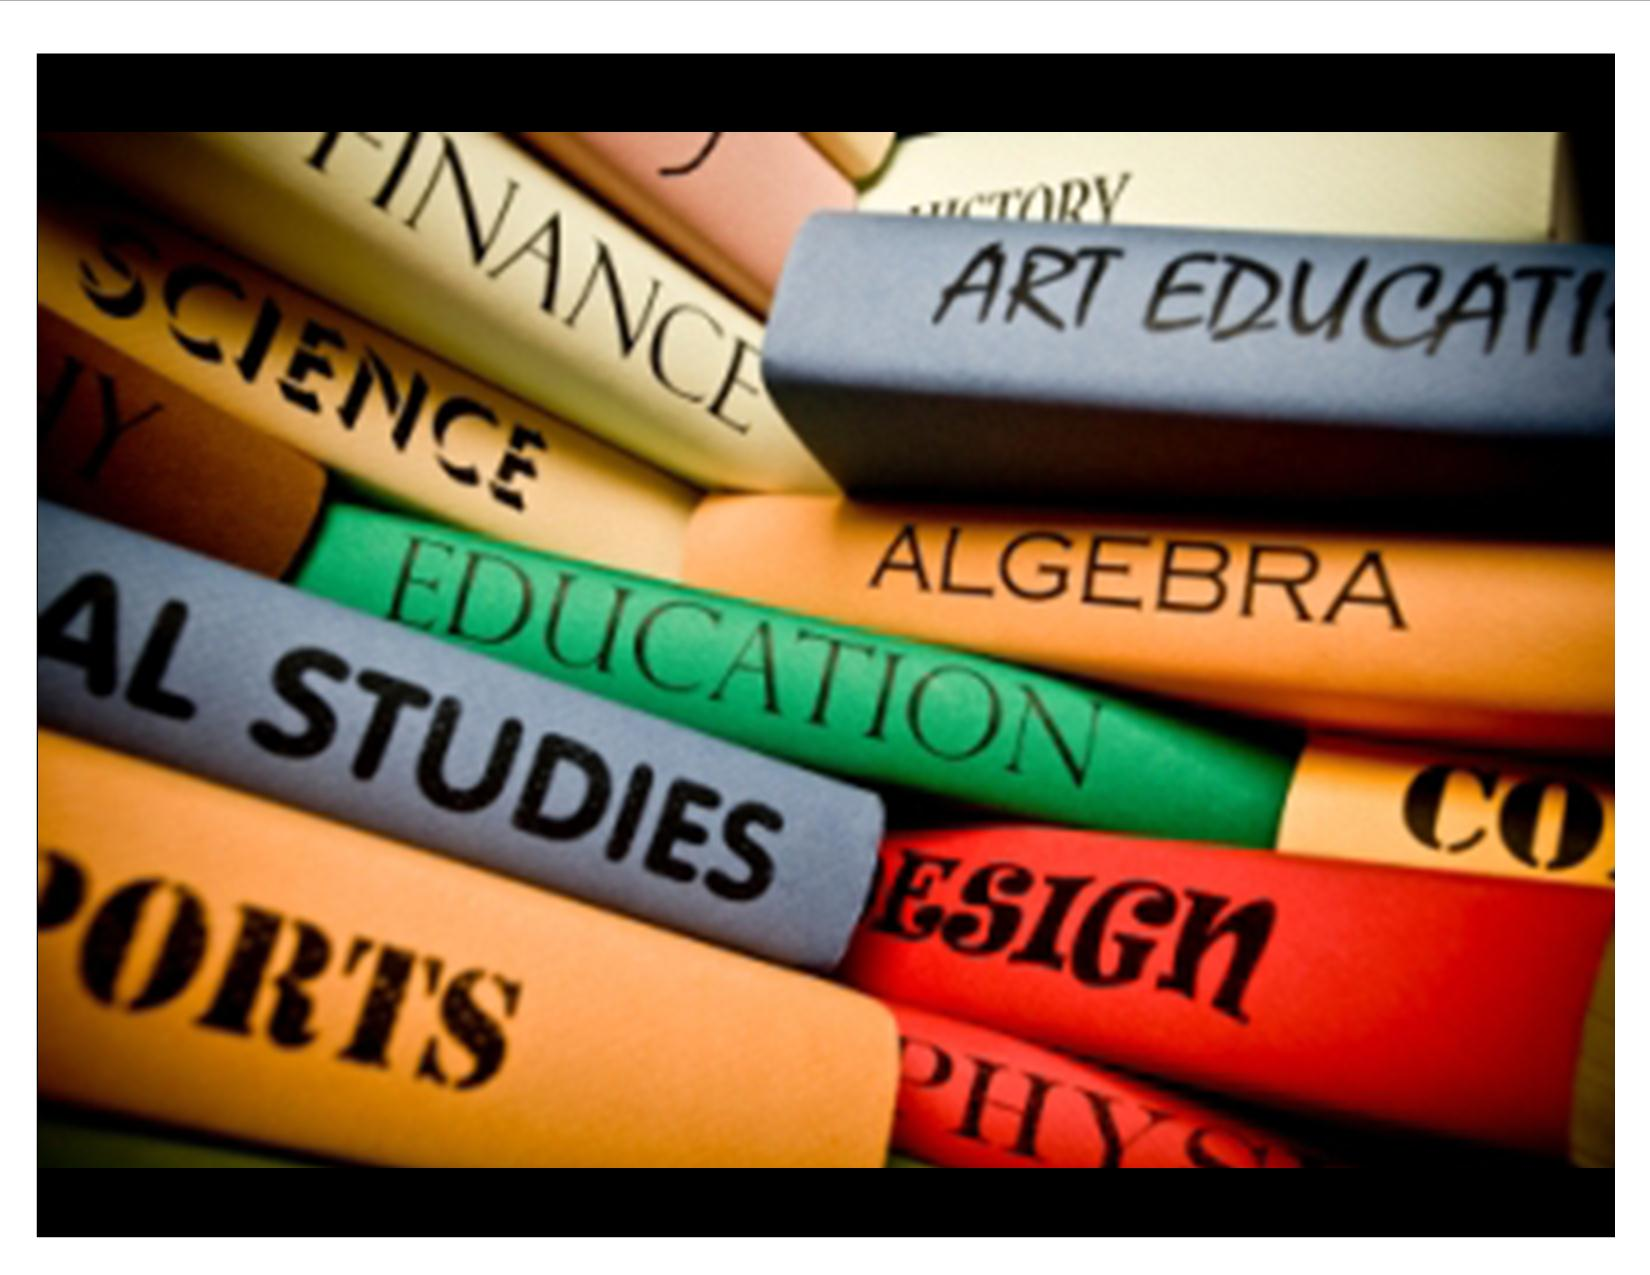 General Studies college subjects students need tutoring in